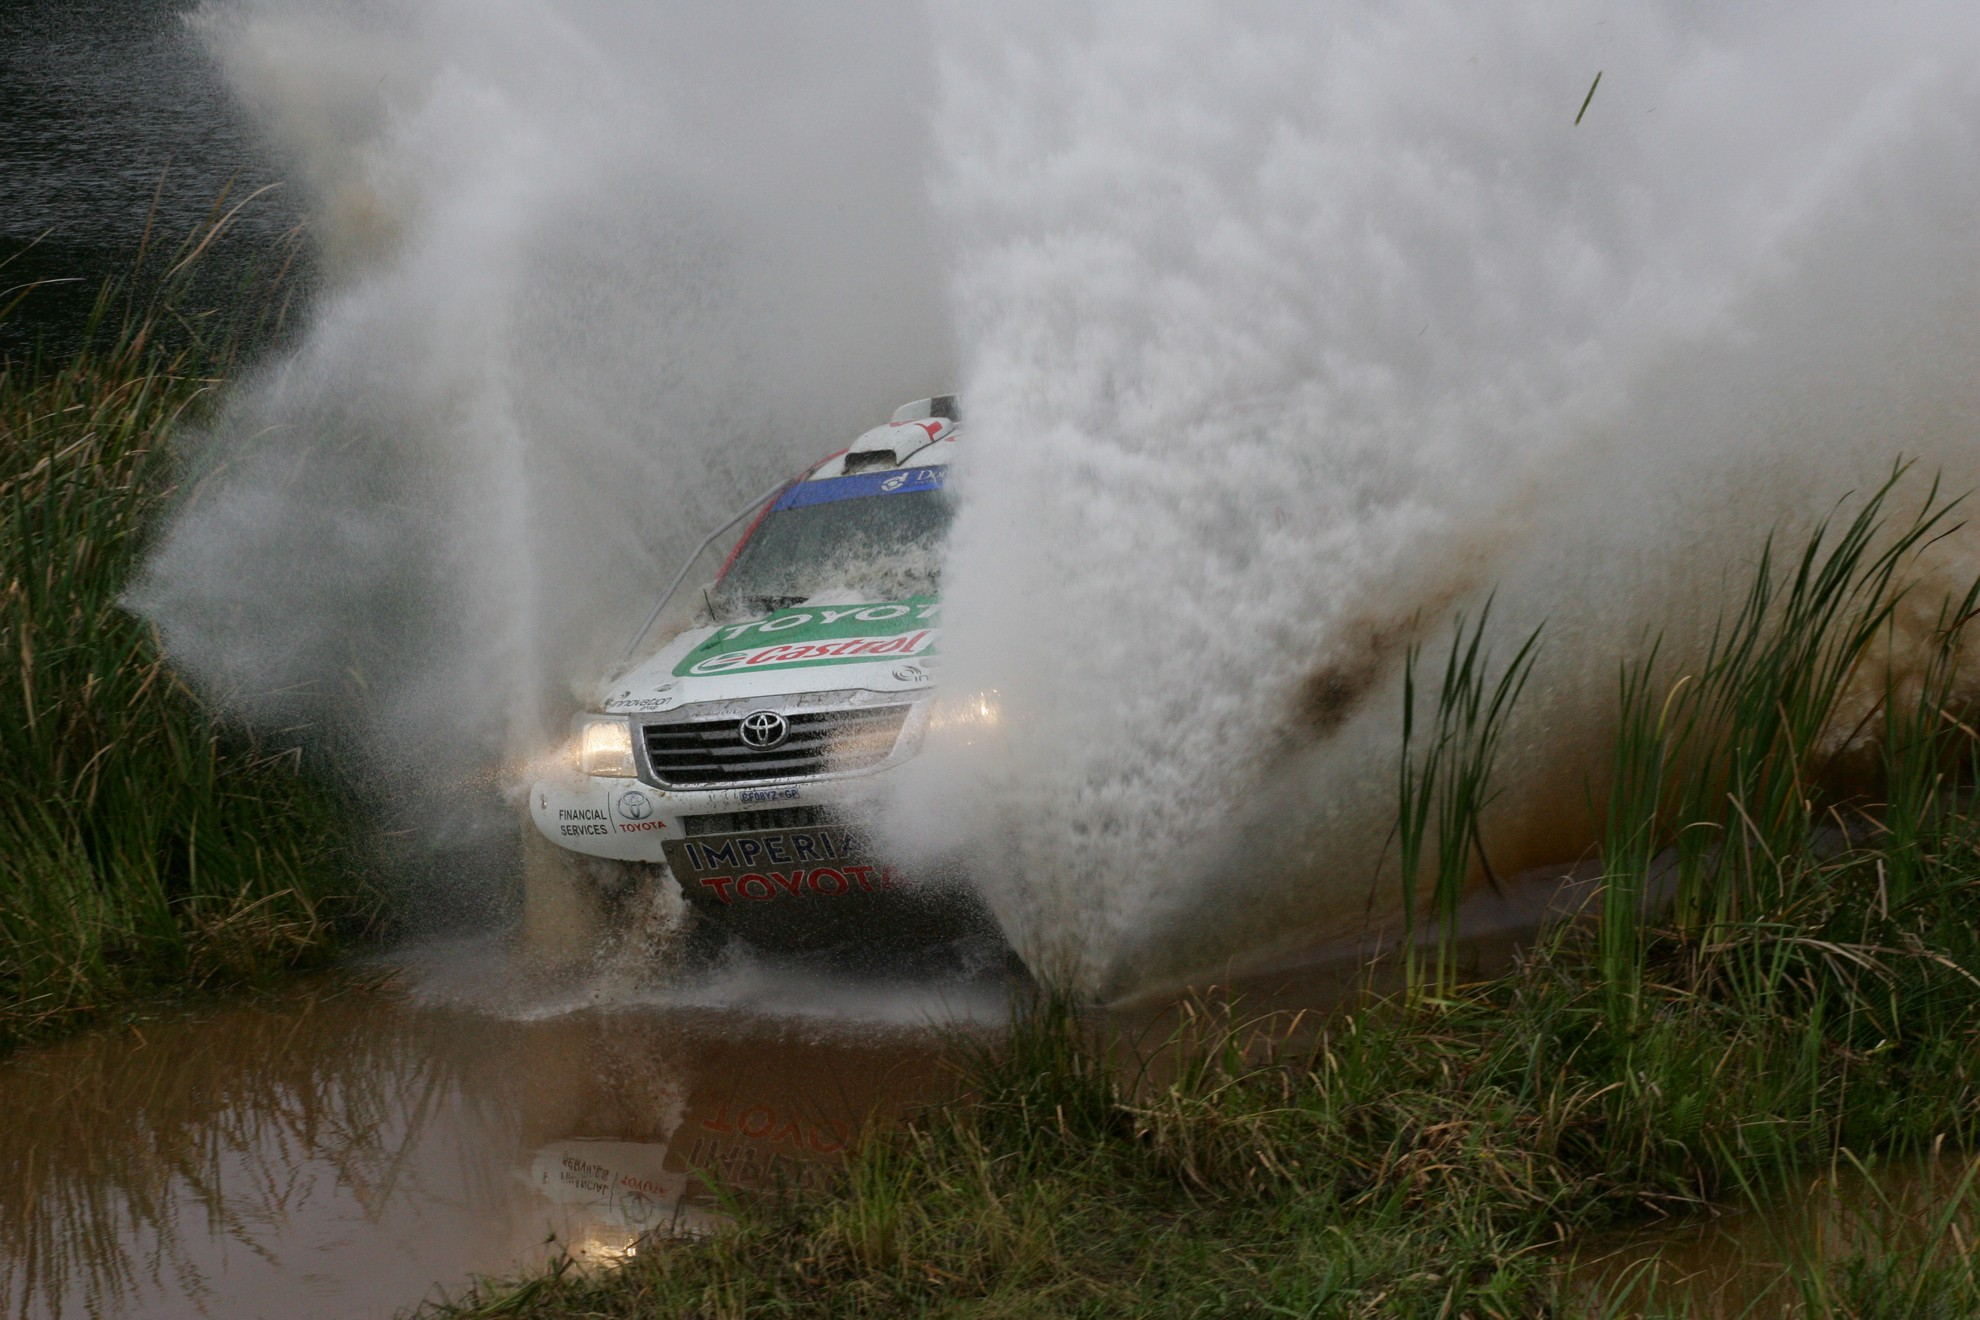 2013 Toyota Hilux Rally